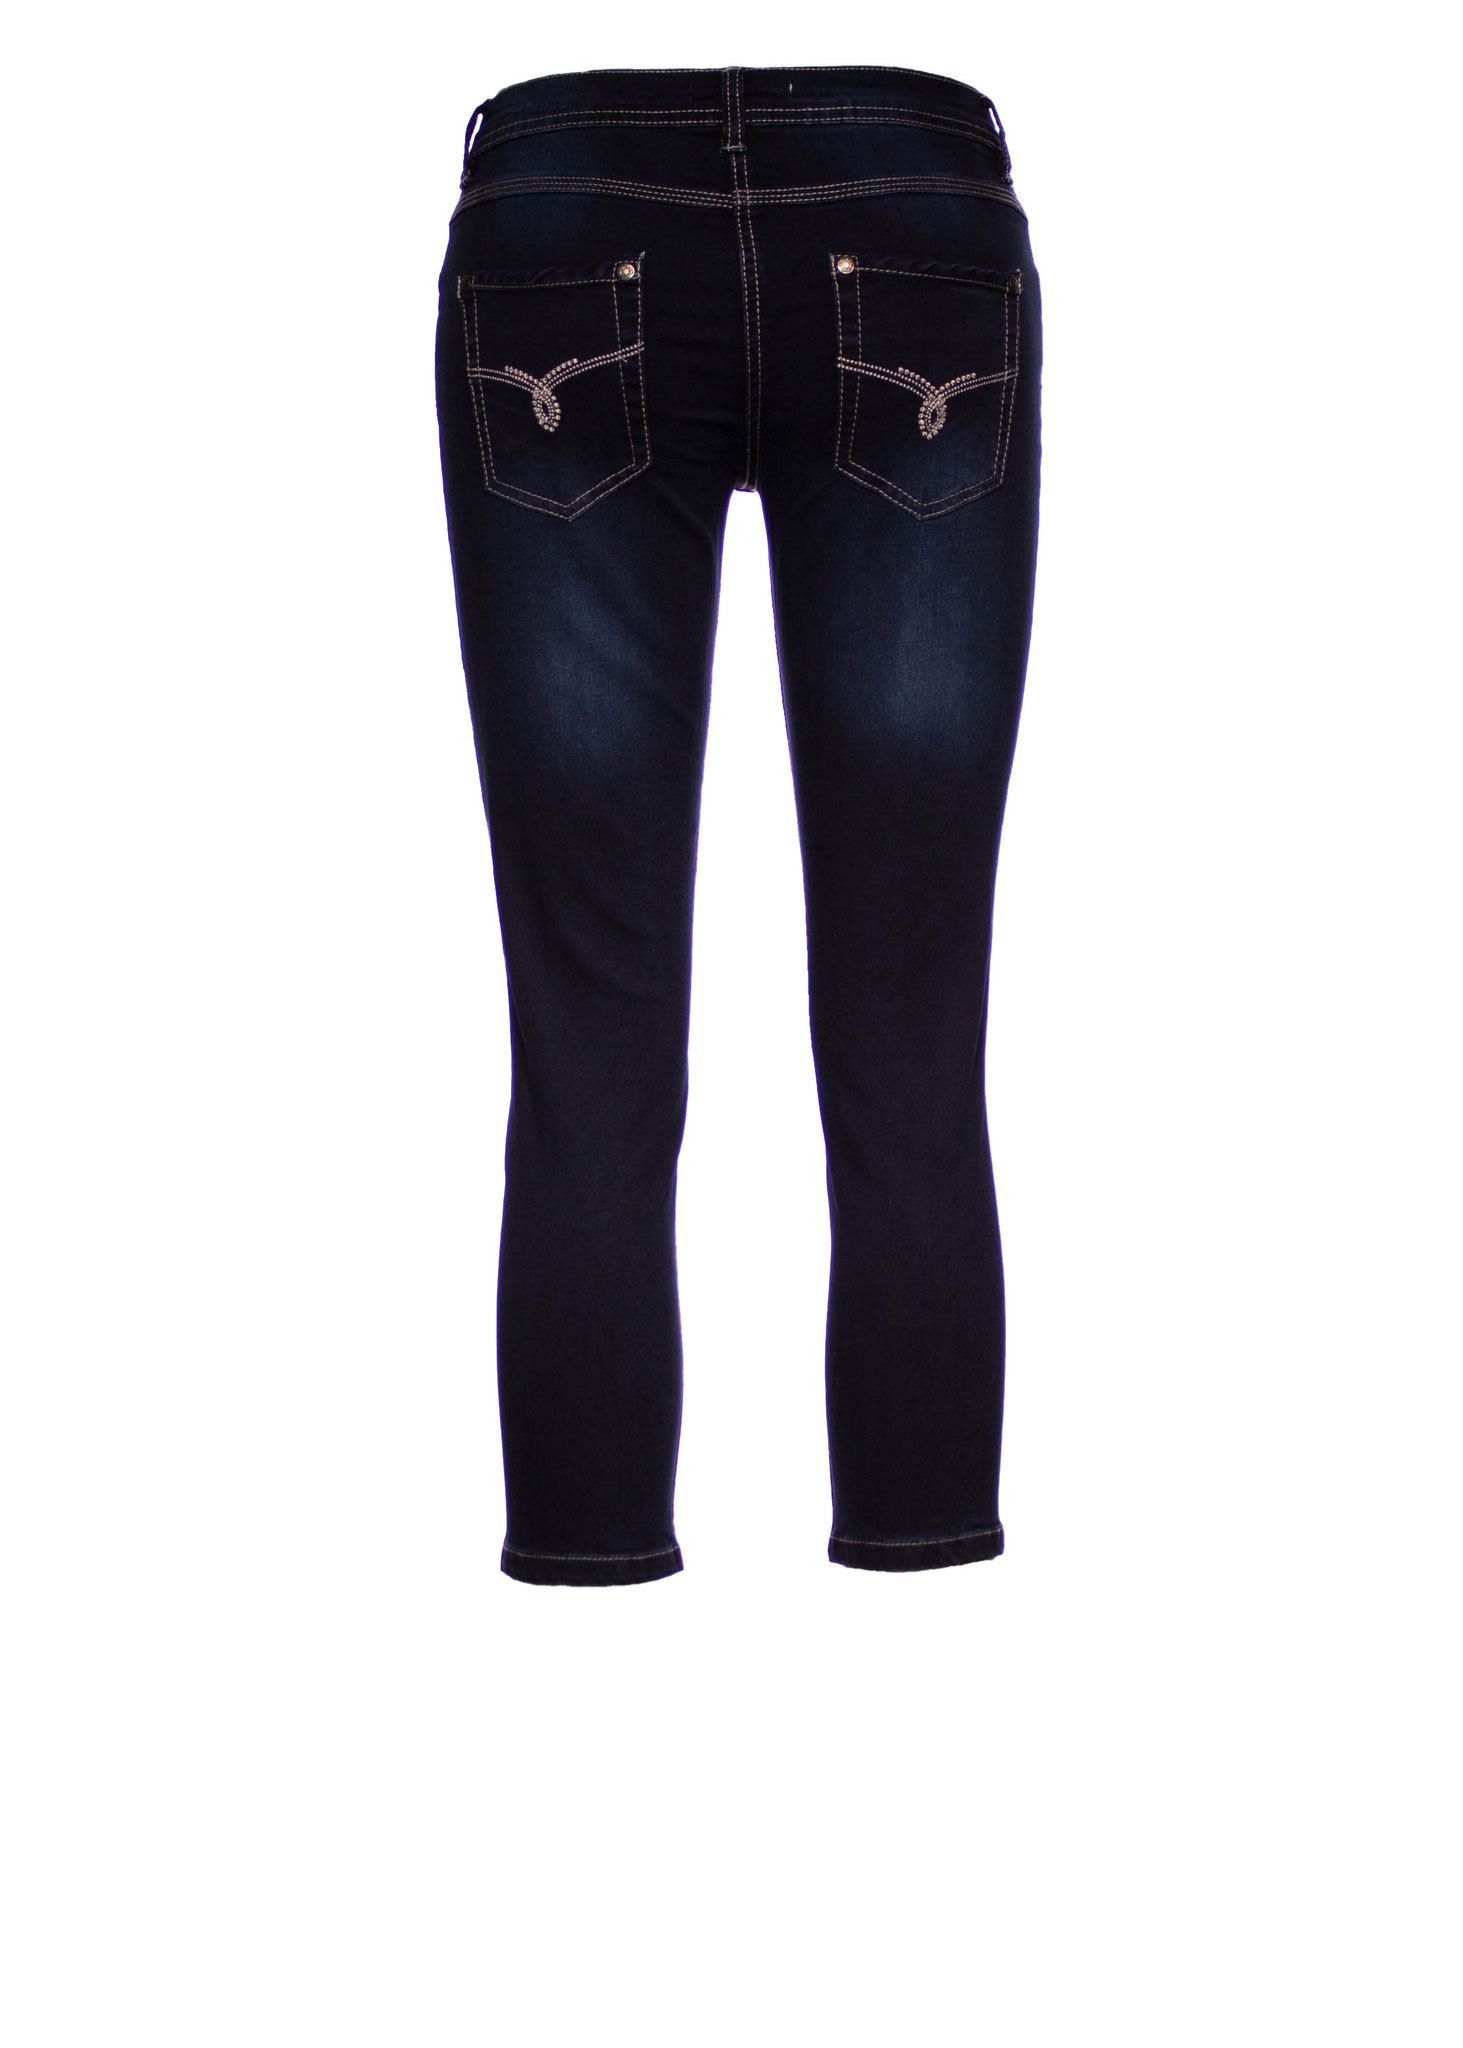 7/8 Jeans 39,99€